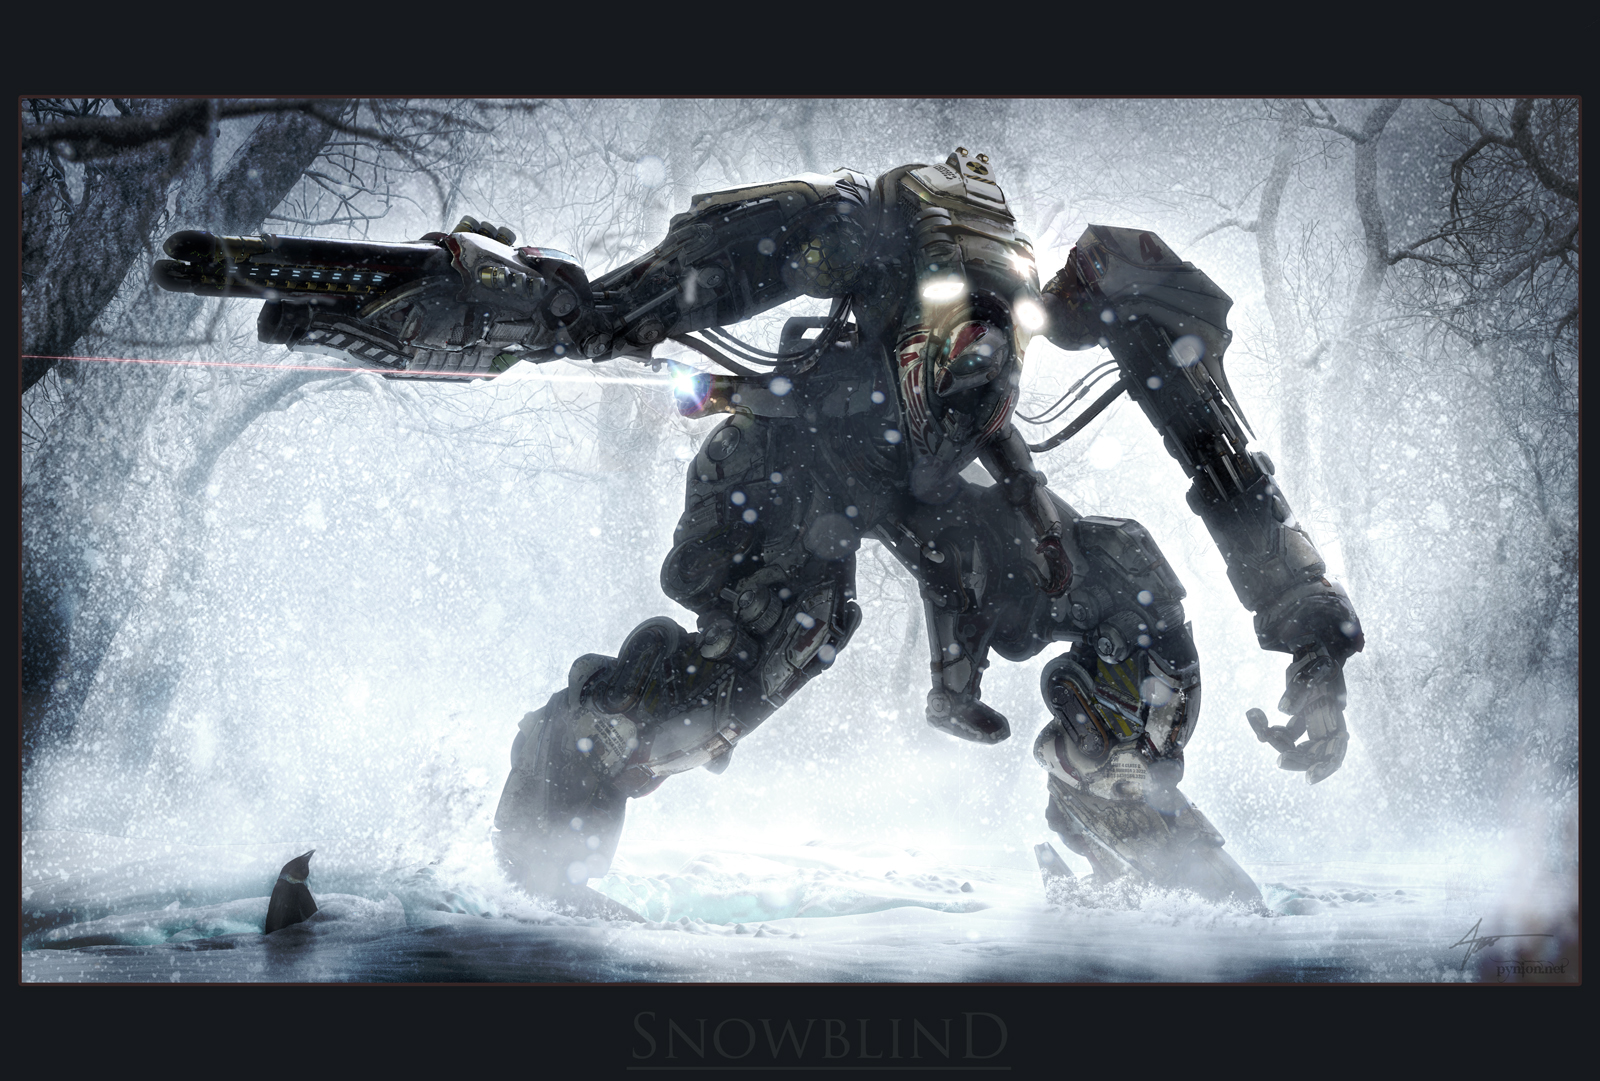 Snowblind - Light Exo Redux by Pynion